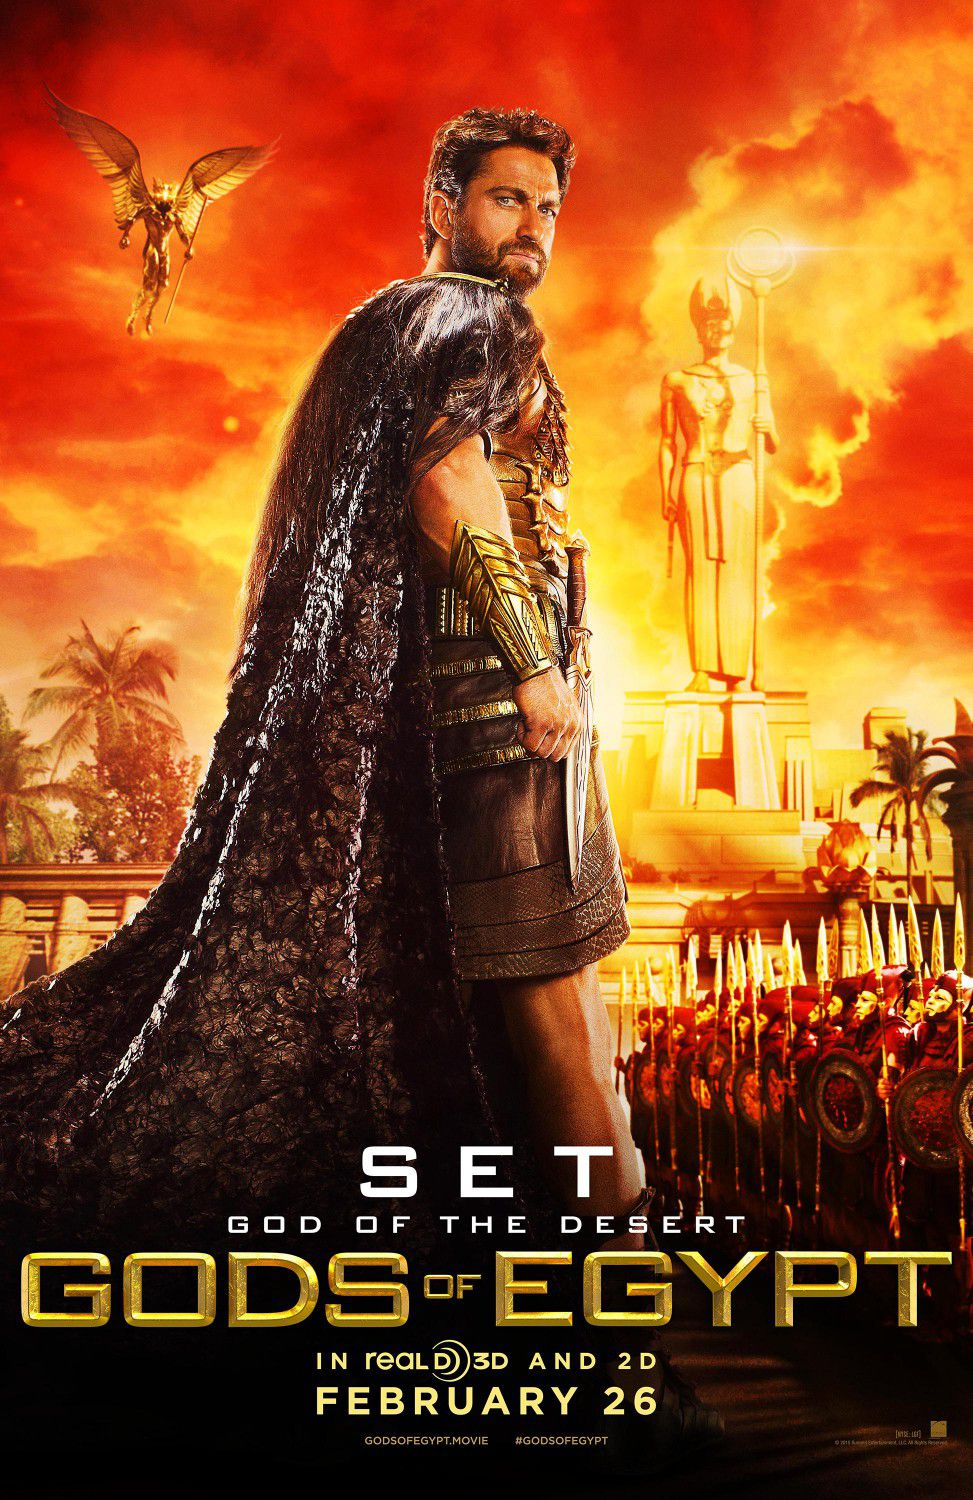 Gerard Butler as Seth